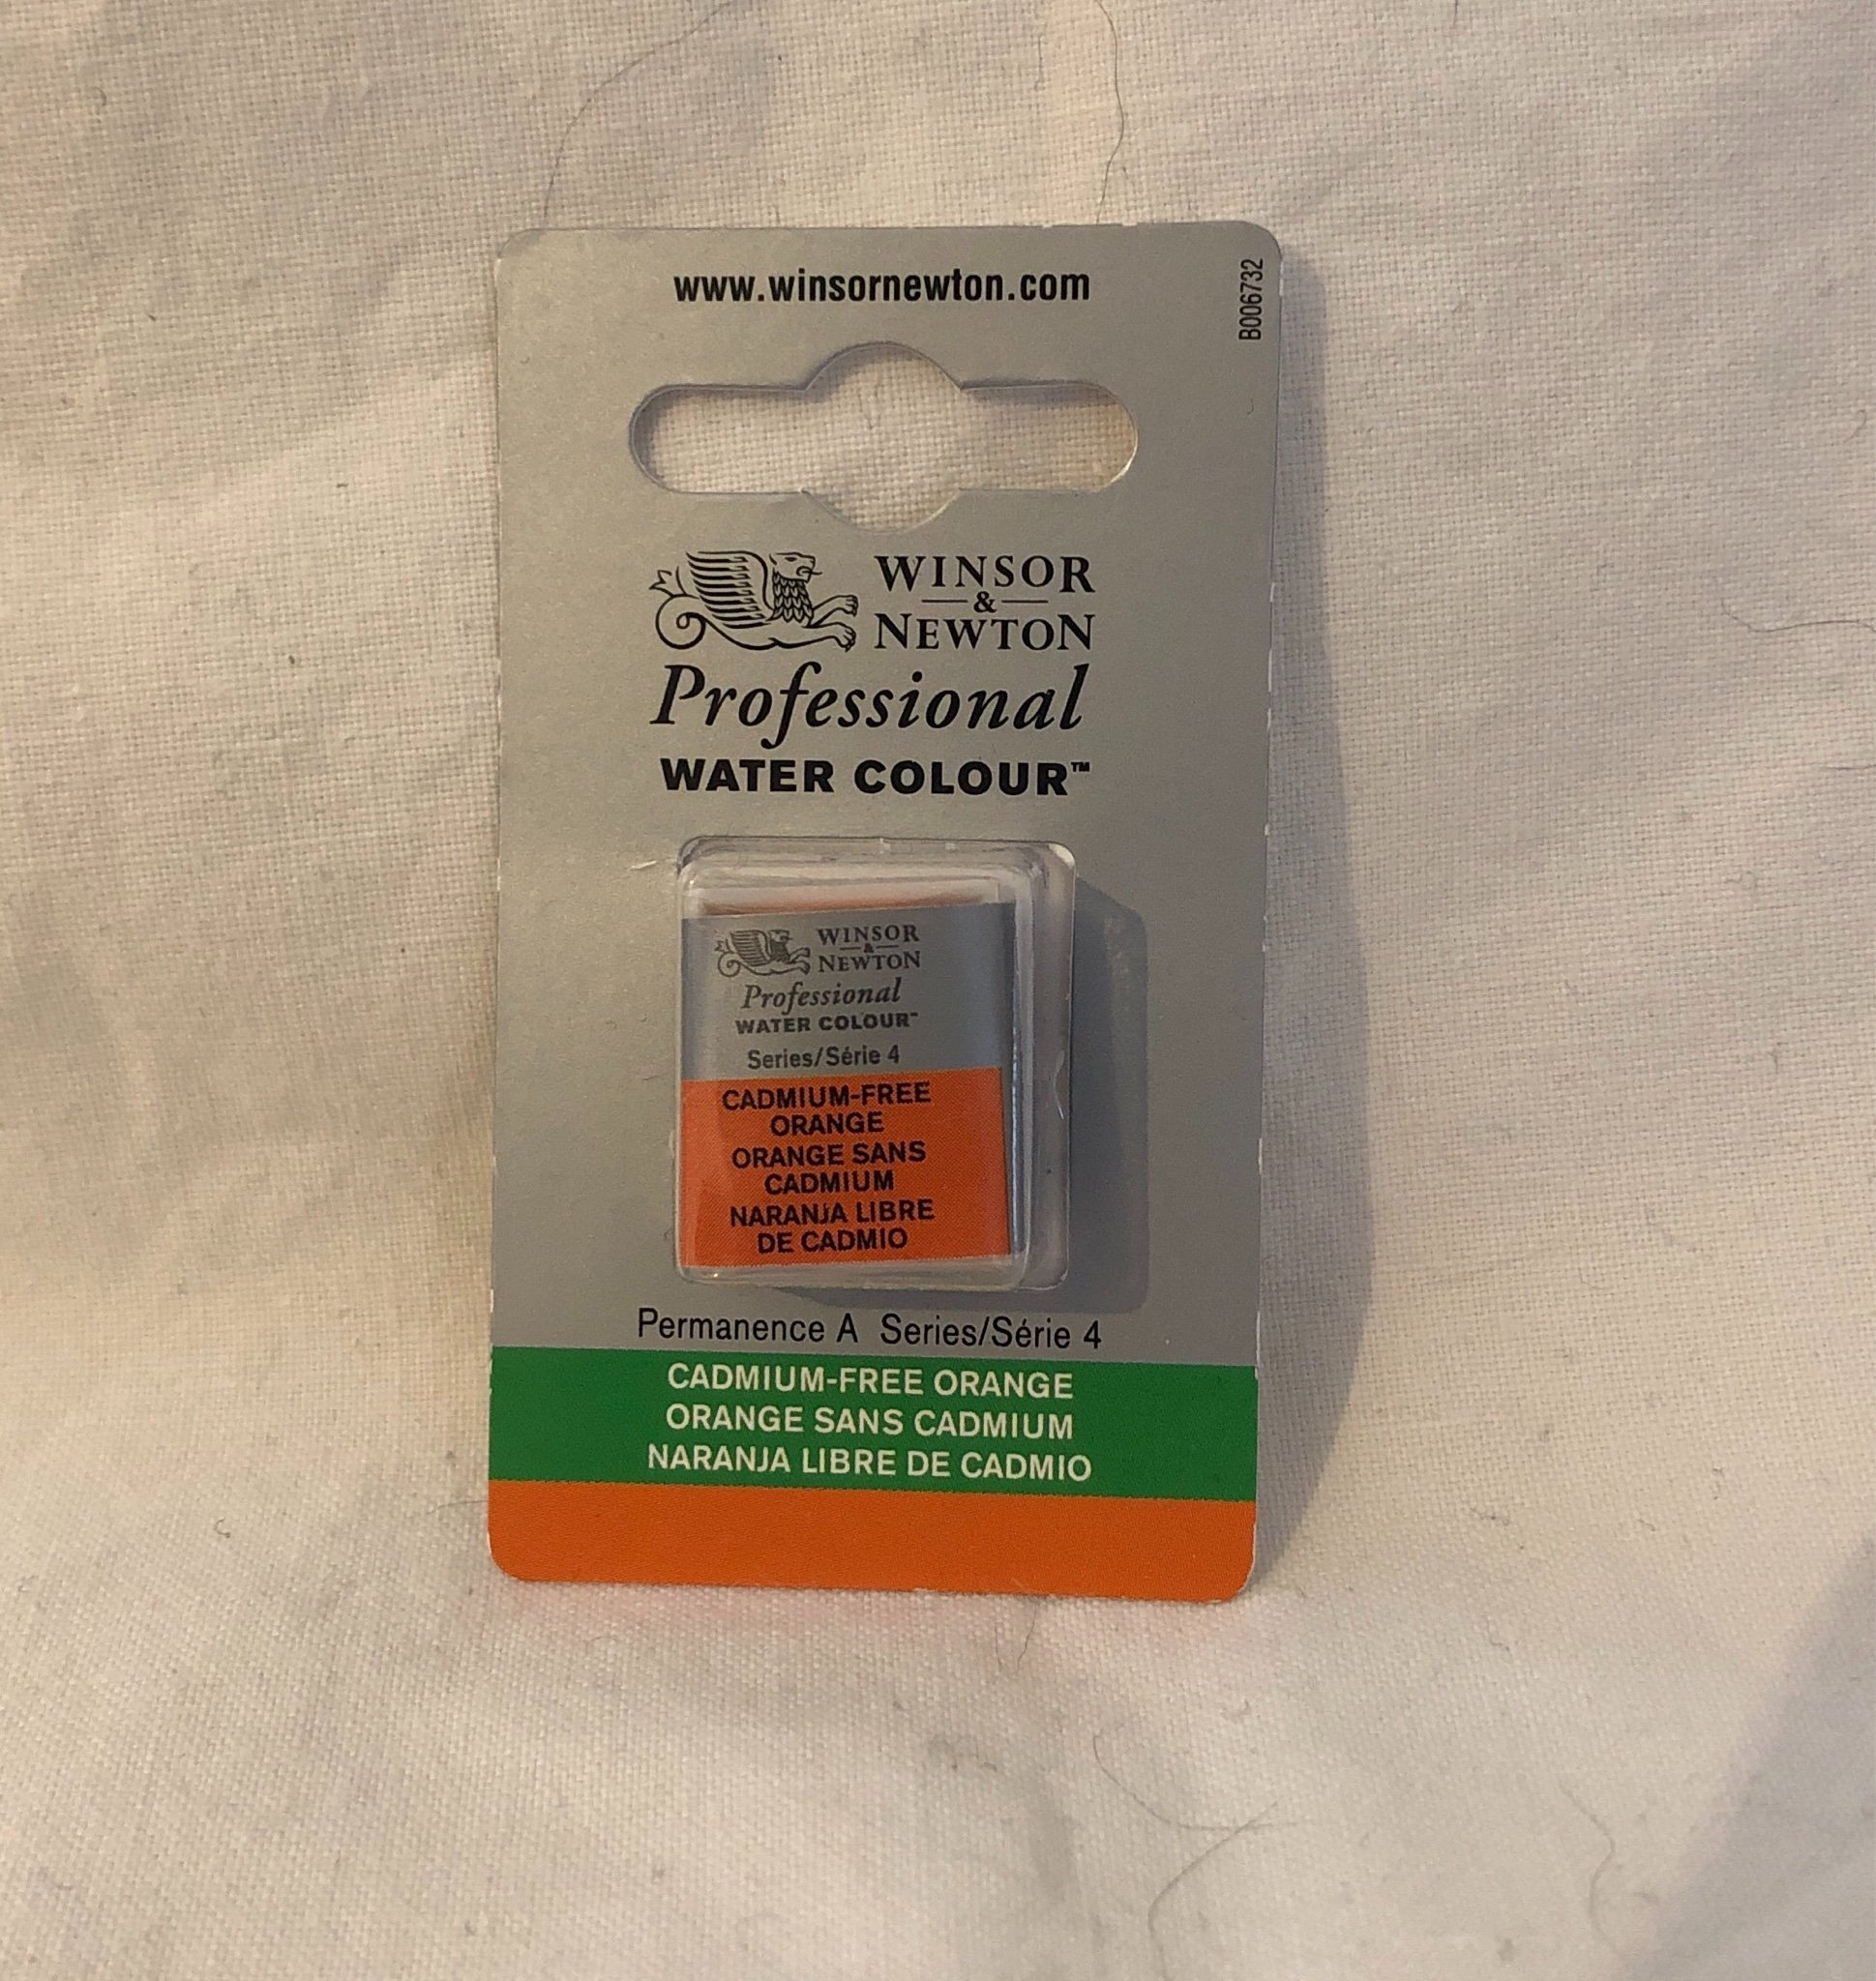 W&N Professional Akvarellfärg Cadmium Free Orange (S4) 1/2k 899